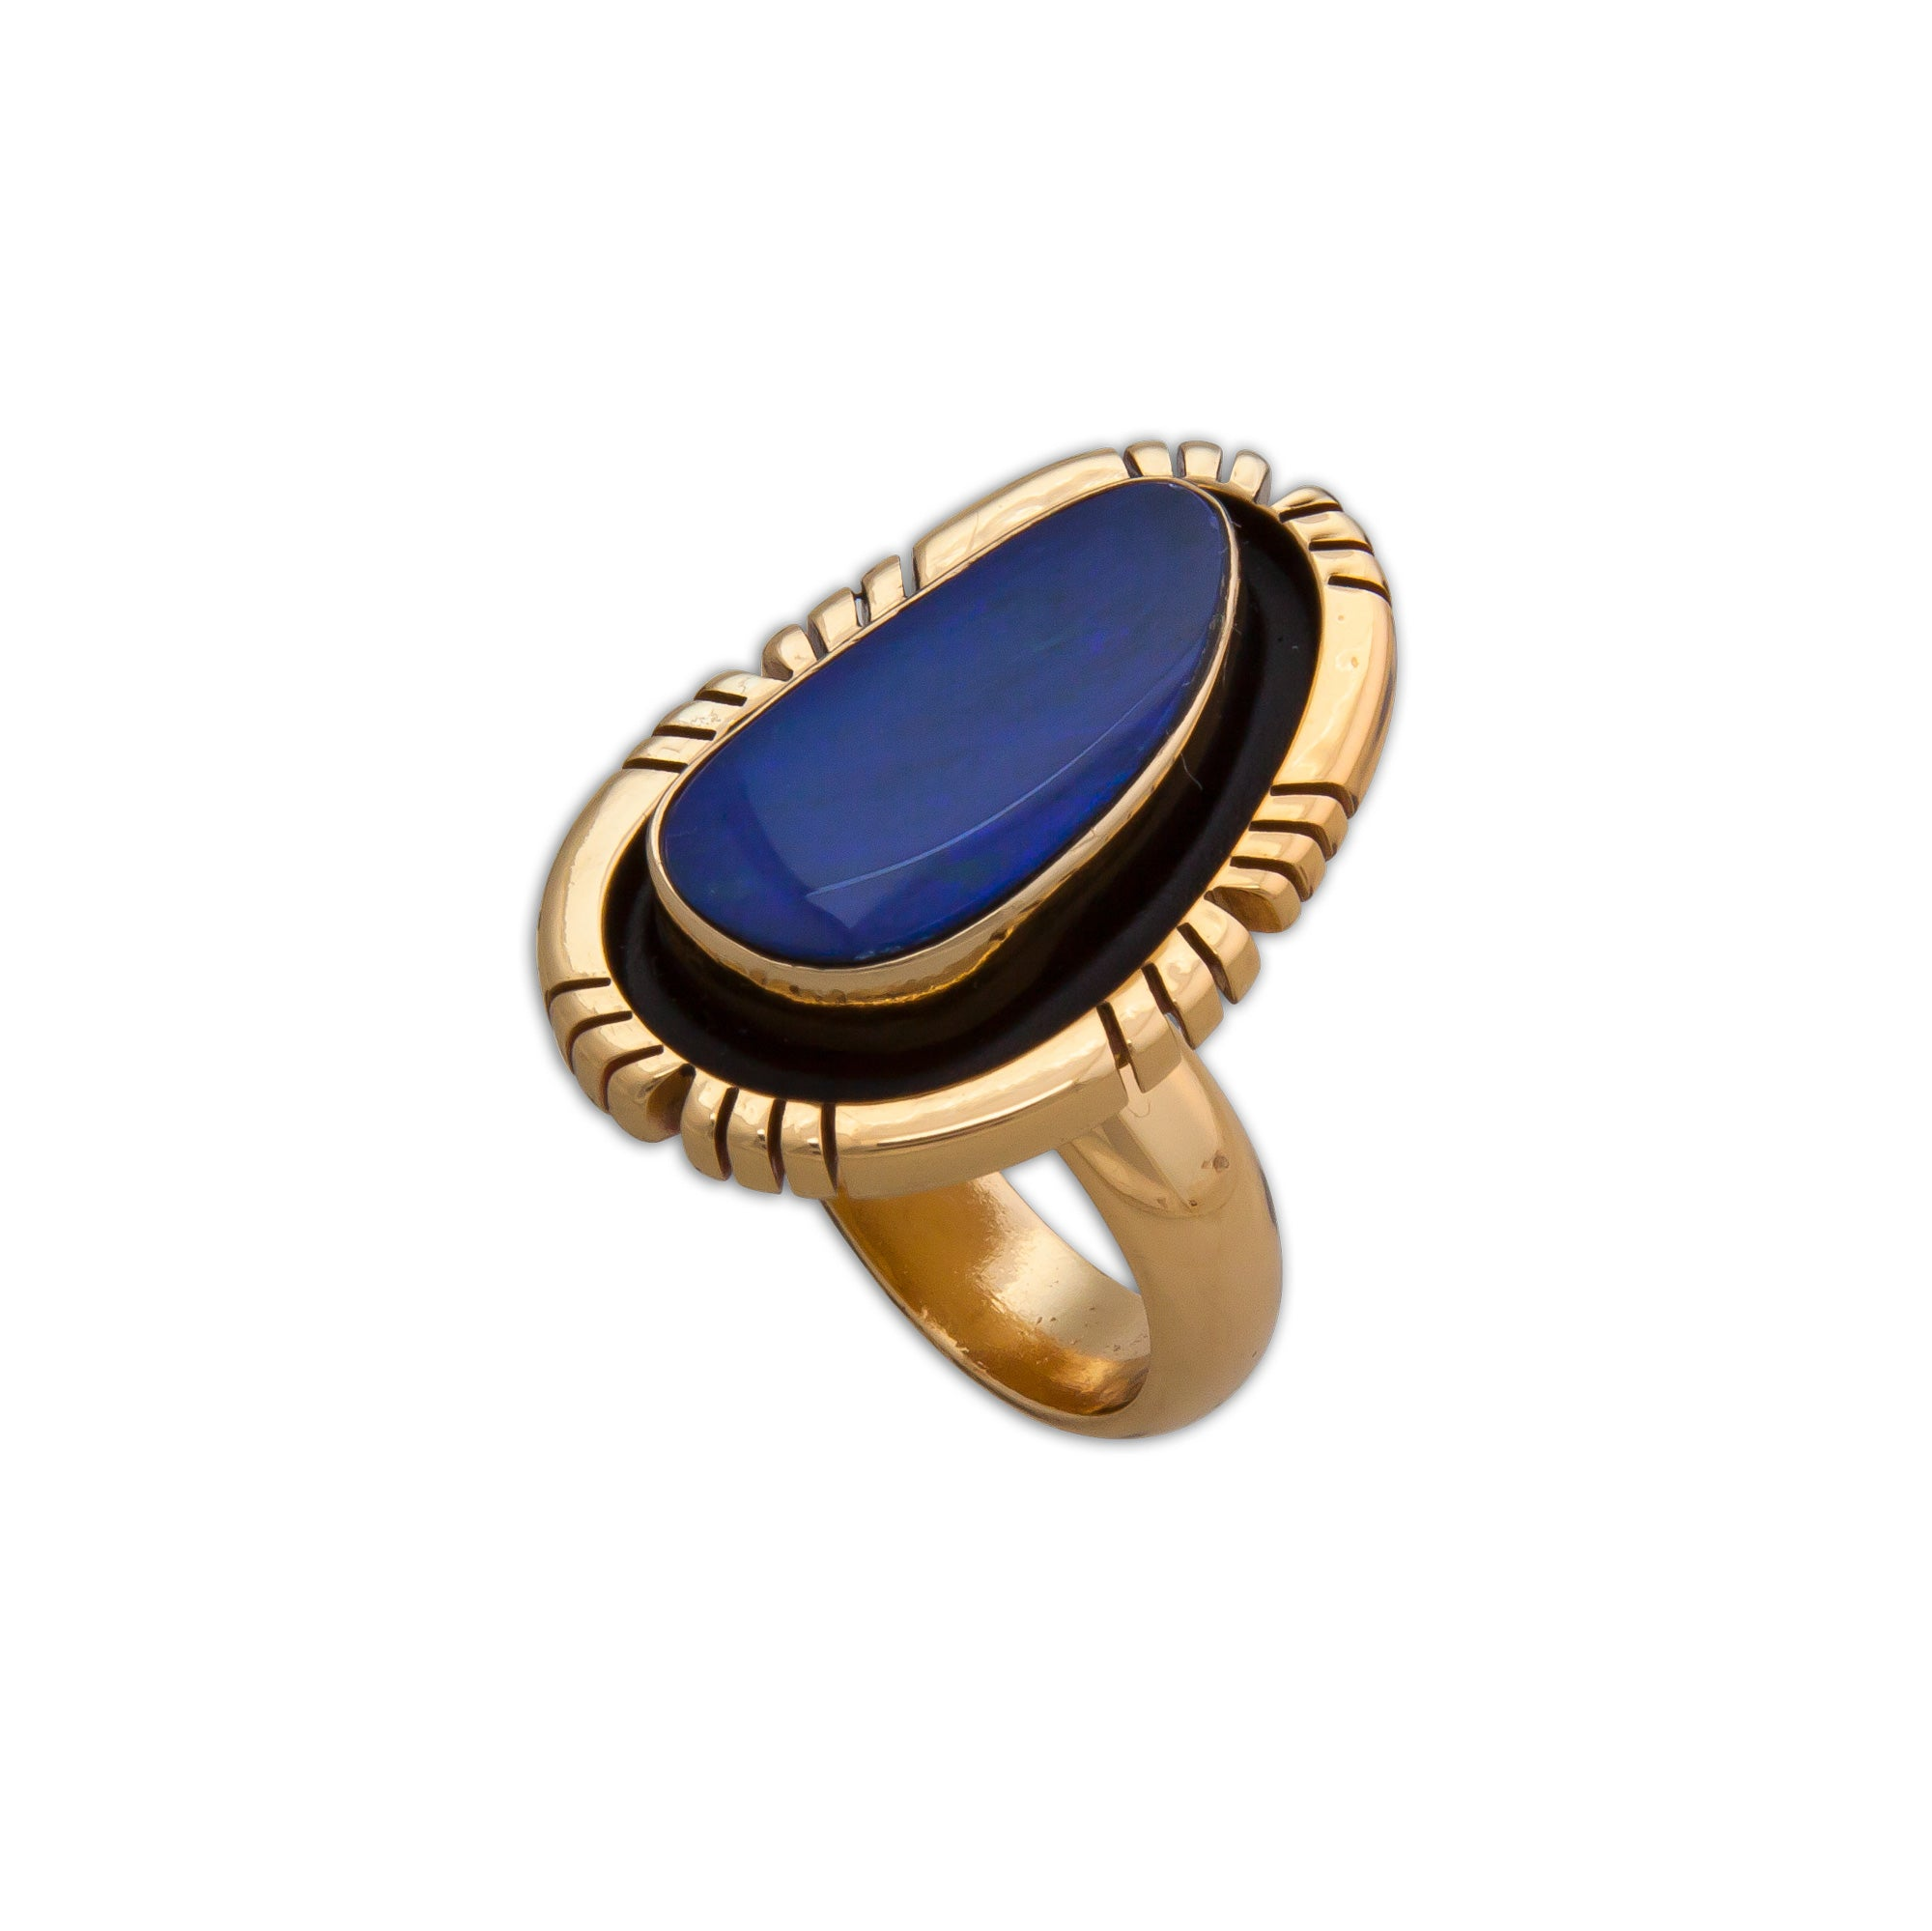 Alchemia Opal Adjustable Ring with Detailed Edge | Charles Albert Inc